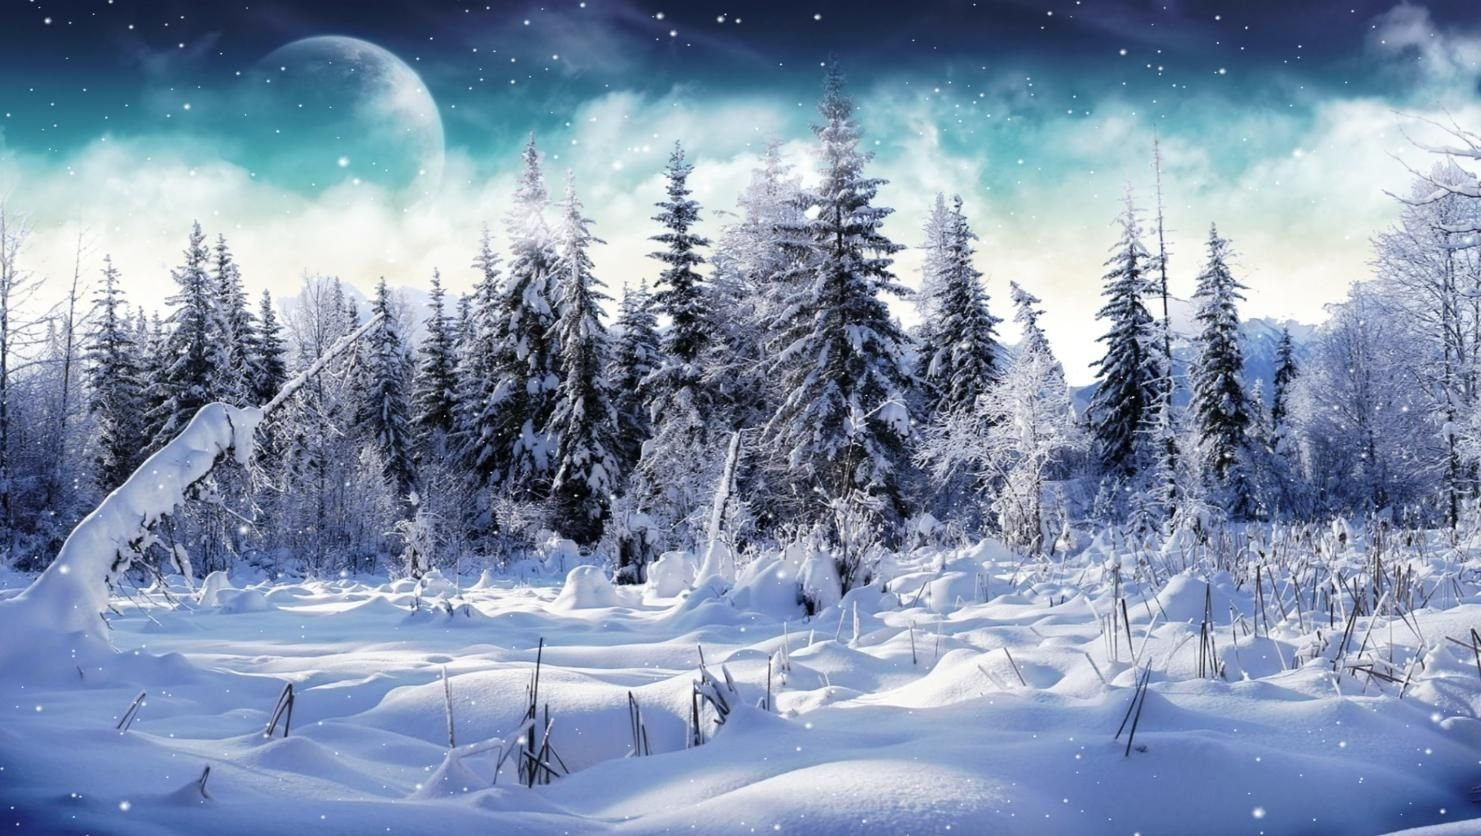 free microsoft screensavers winter scene | download cold winter